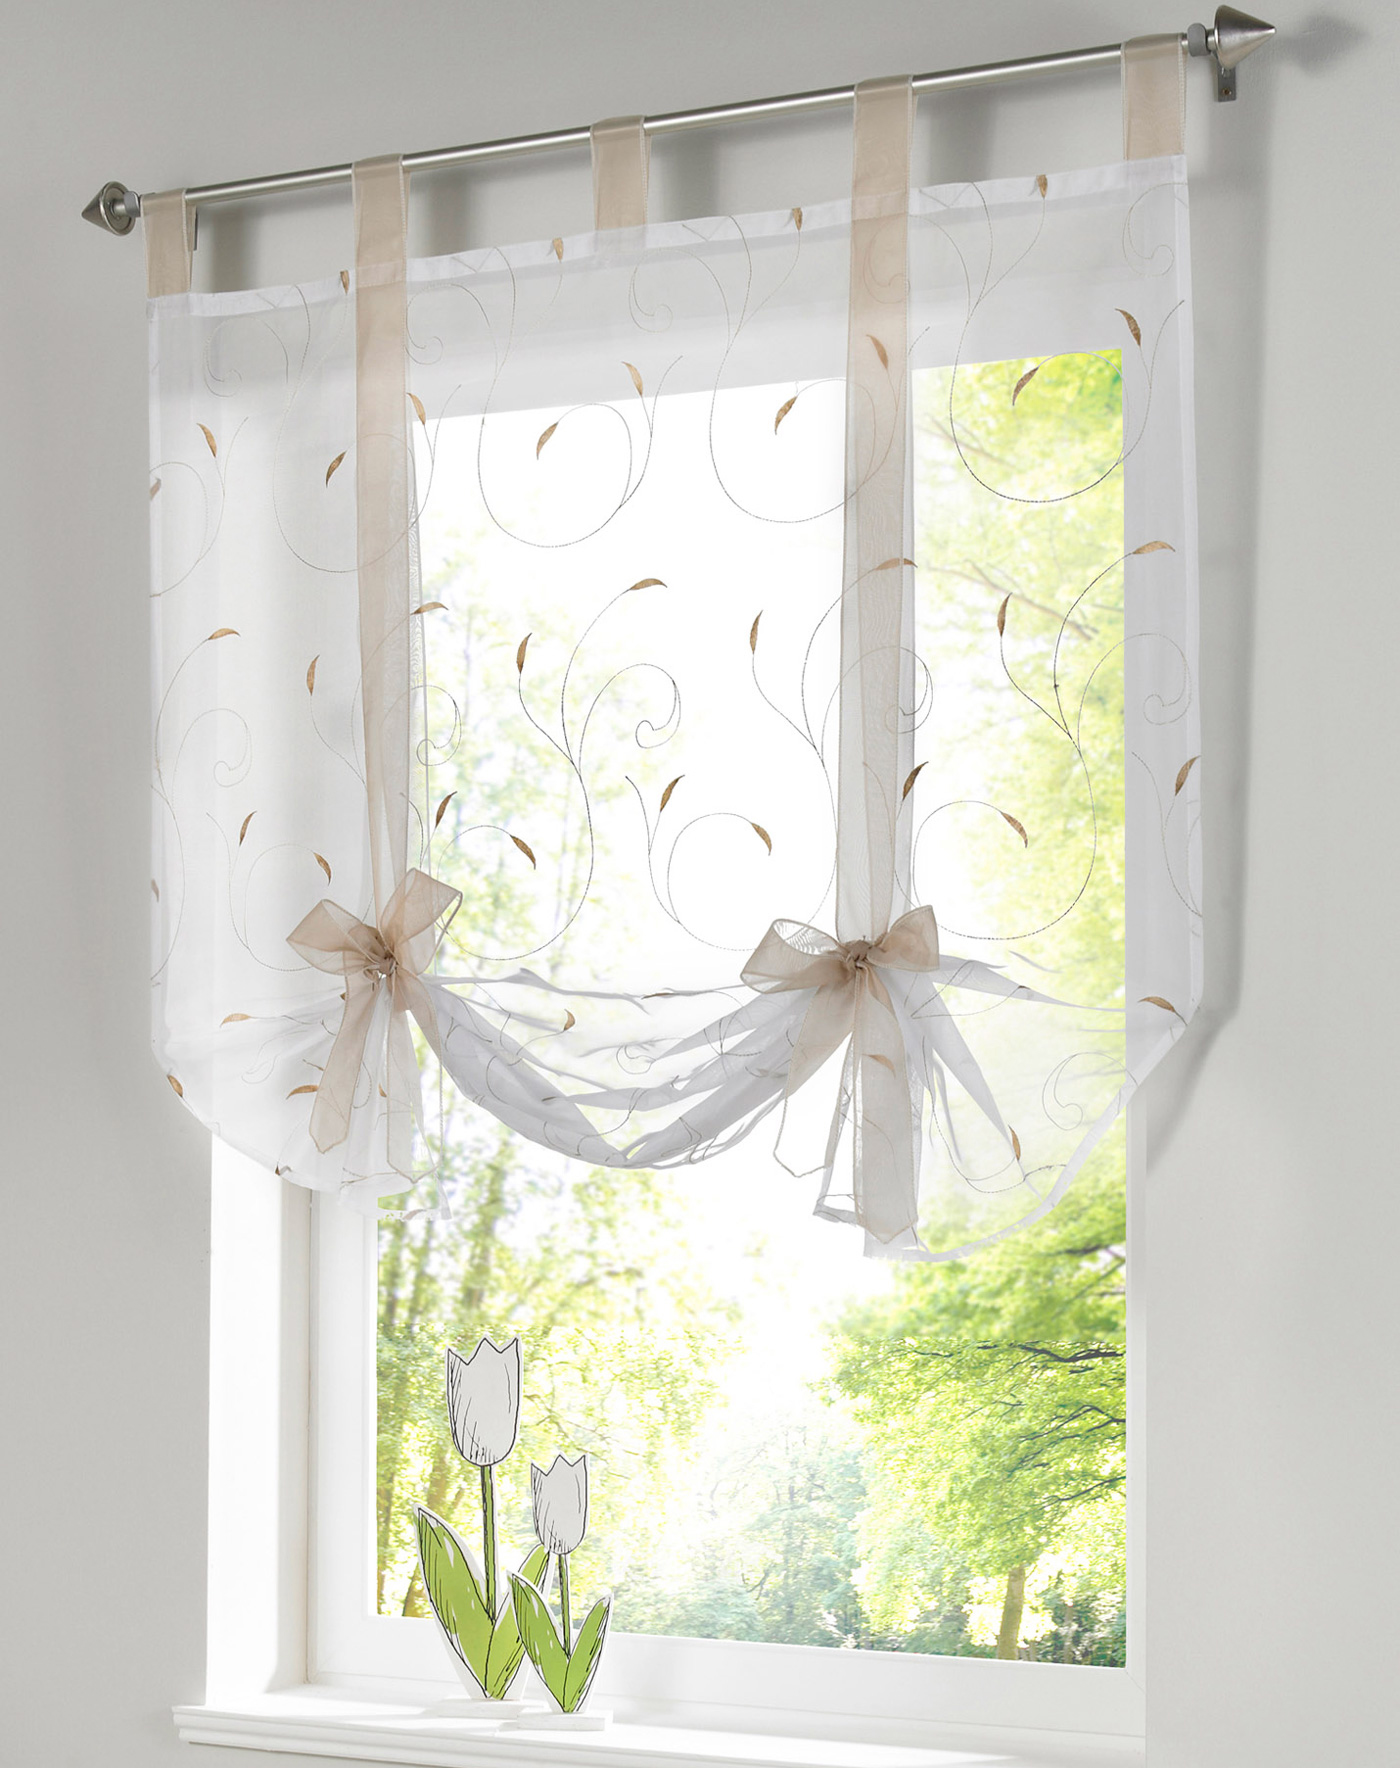 tulle-streamers-embroidery-patterns-roman-blinds-curtains-for-kitchen-bedroom-living-room-window-decorative